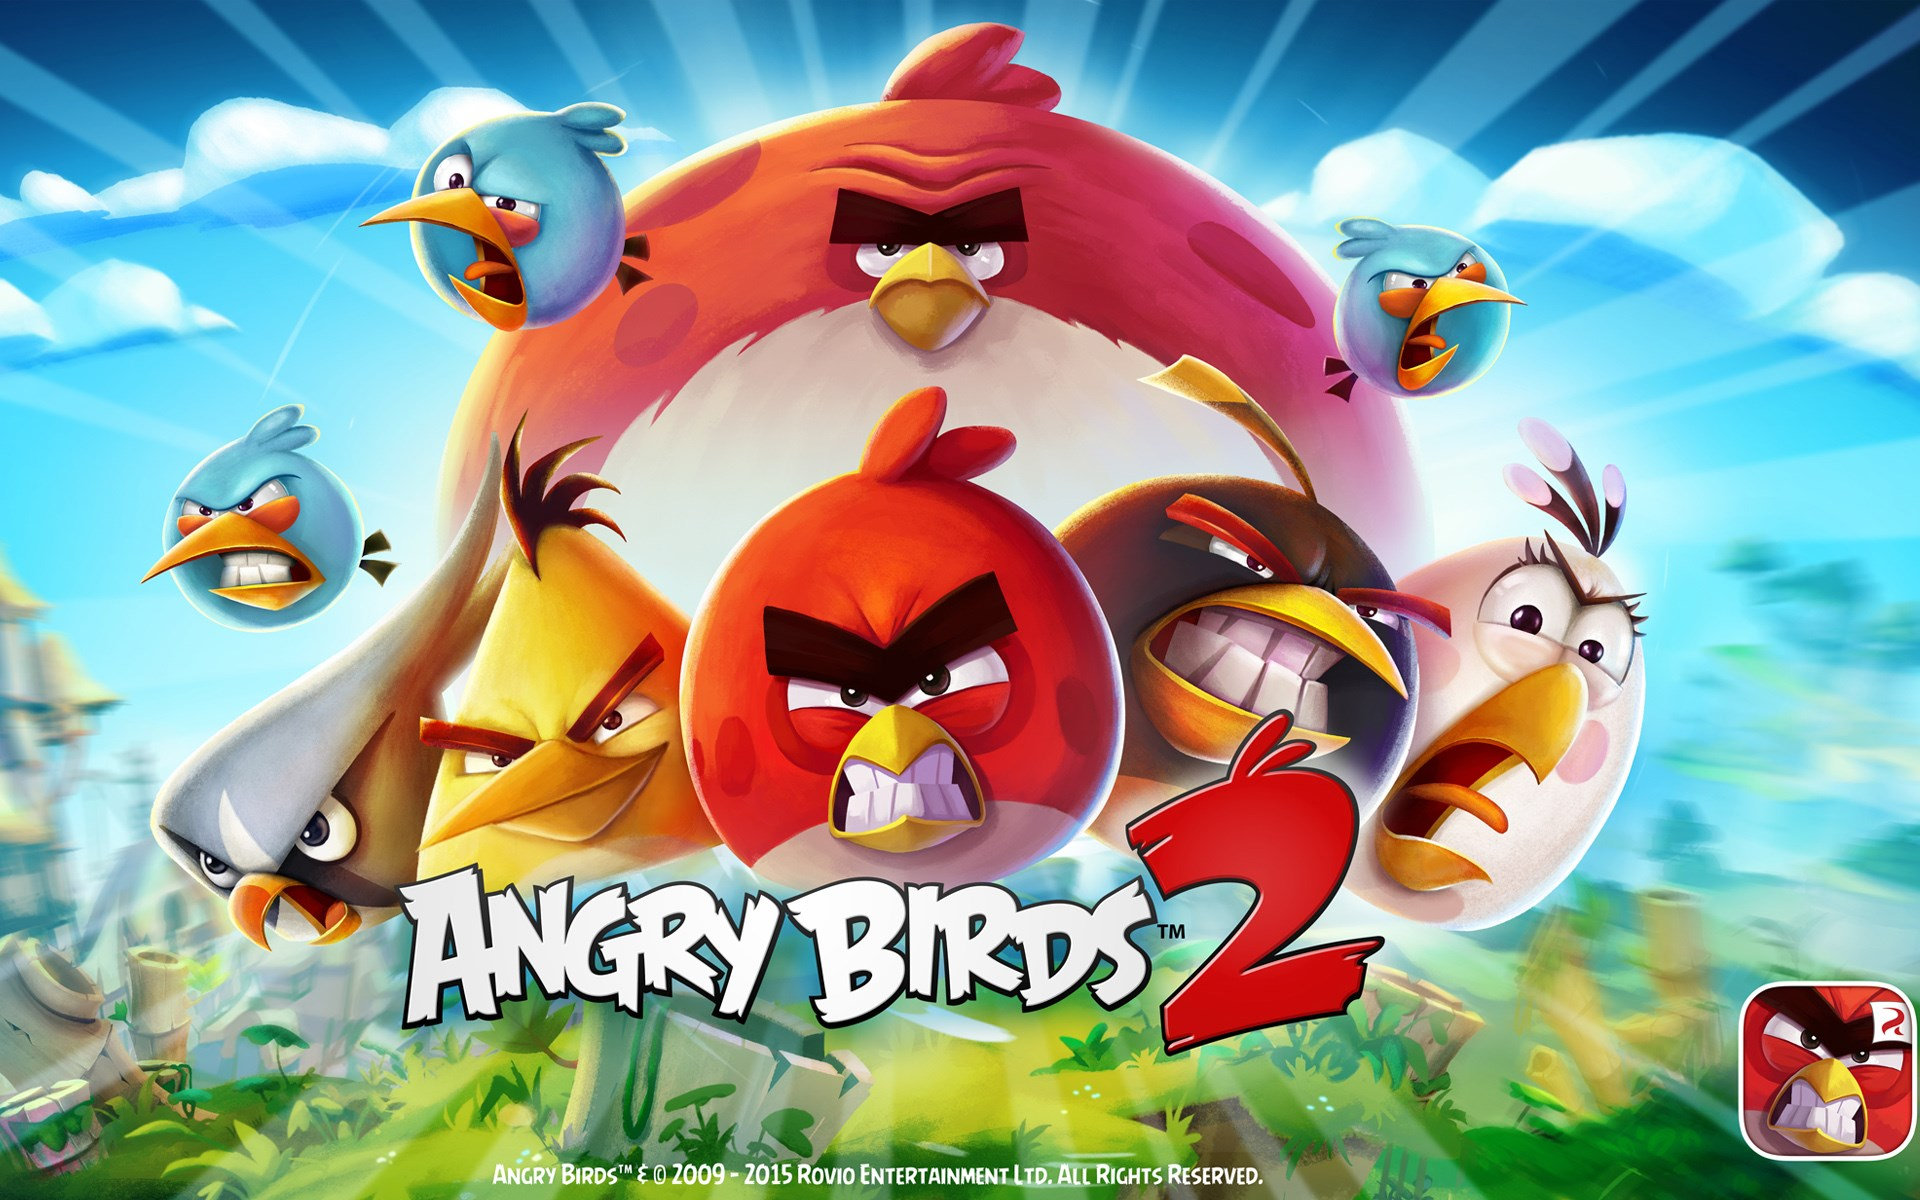 angry-birds-picture-1080p-high-quality-Fisher-Gill-wallpaper-wp3402377